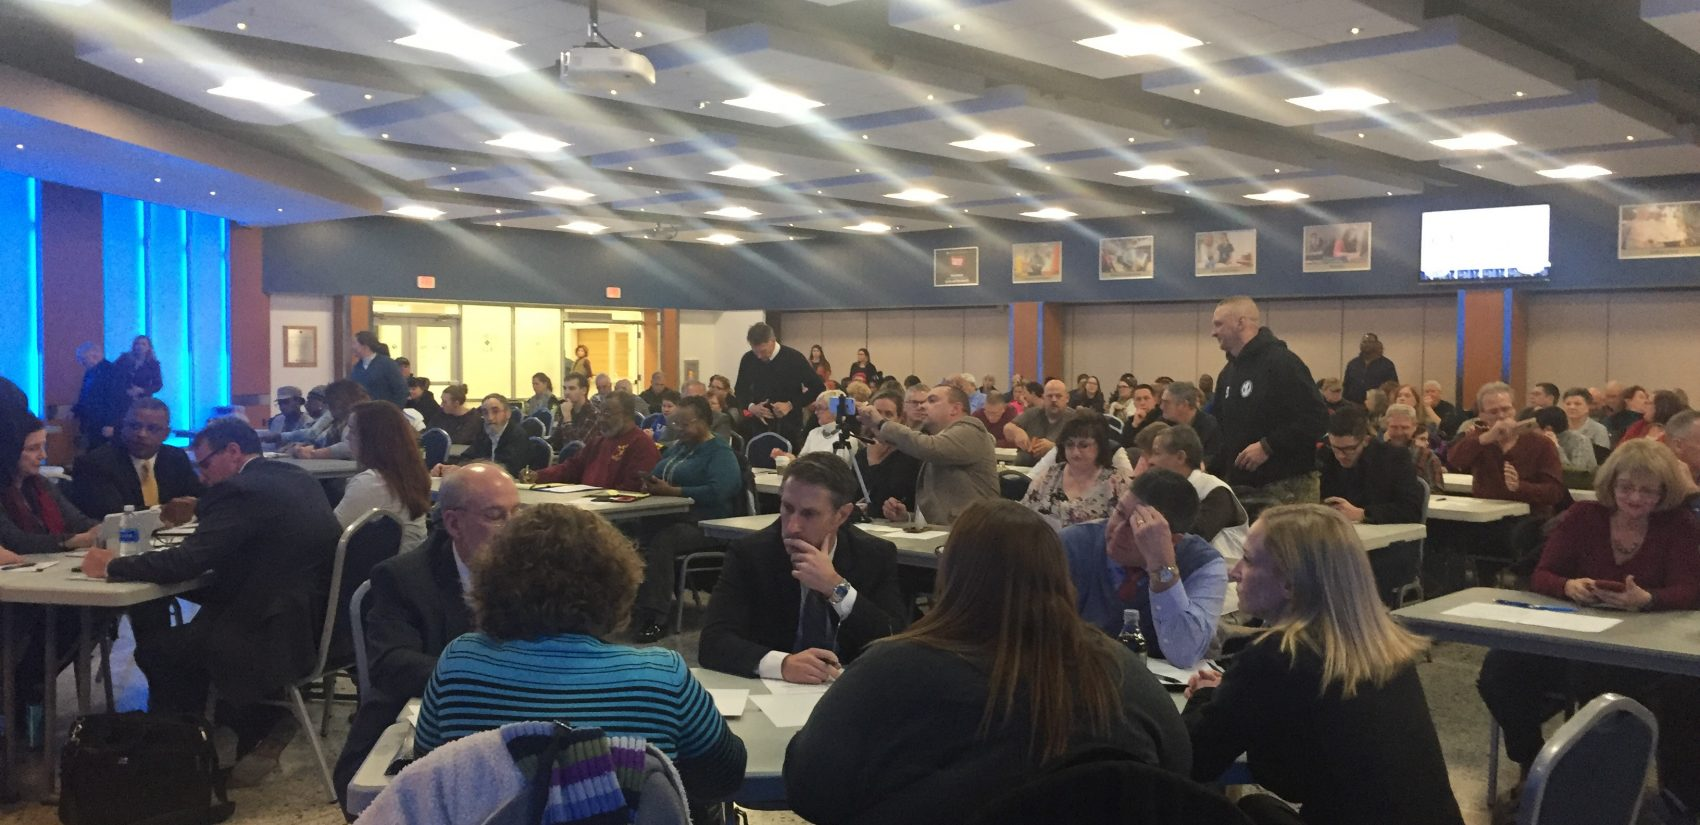 Vocal opponents and supporters of the proposed anti-discrimination policy for schools attended a meeting of Gov. John Carney's team of officials, advocates and parents developing Regulation 225. (Cris Barrish/WHYY)